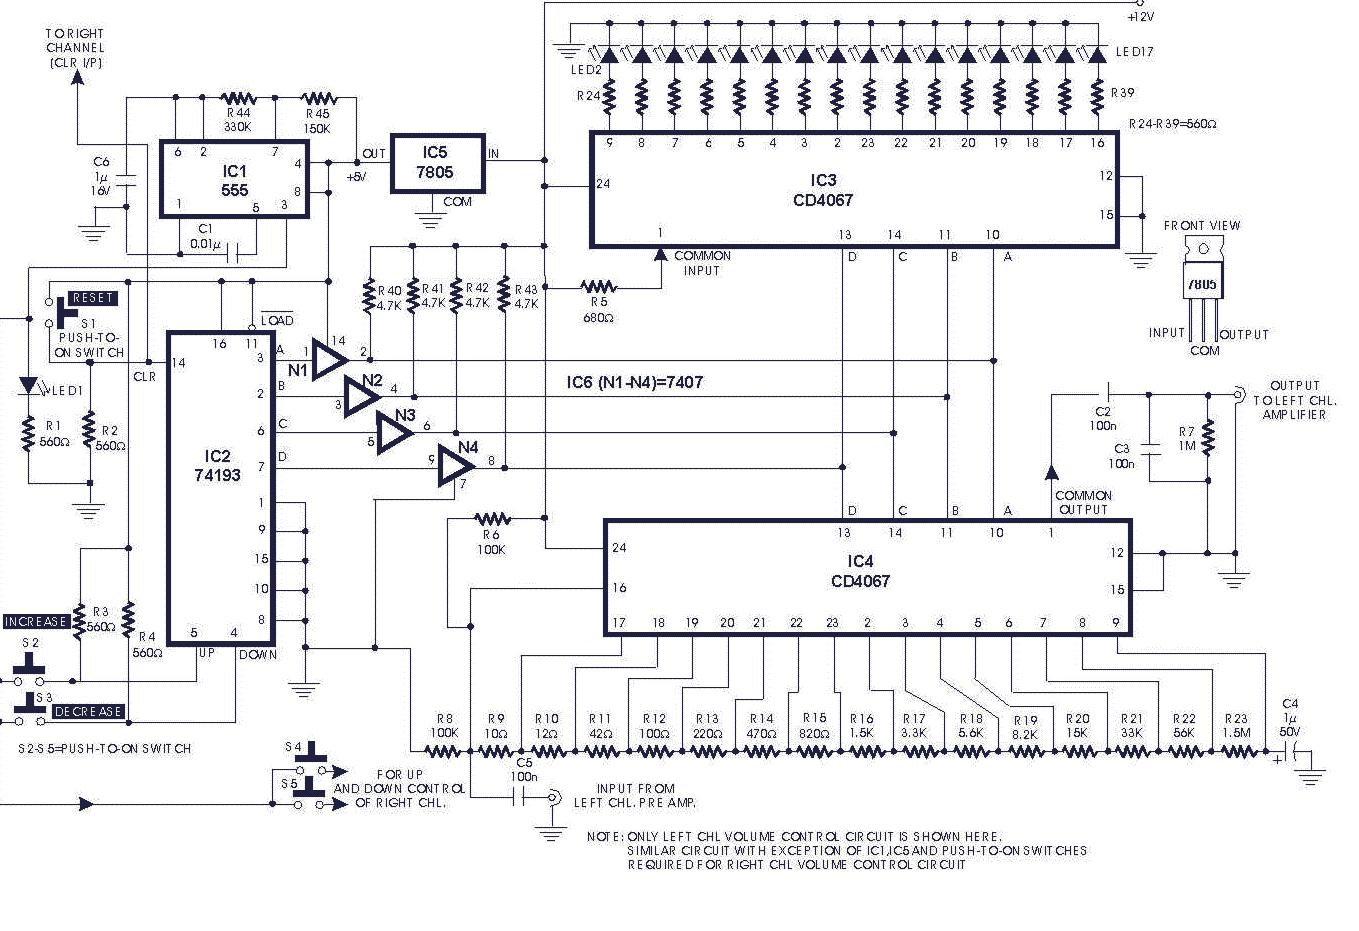 June 2011 Electronics Circuits For You 18w Audio Amplifier Circuit And Explanation Electronic Digital Volume Control 0614 No Comments Diagram